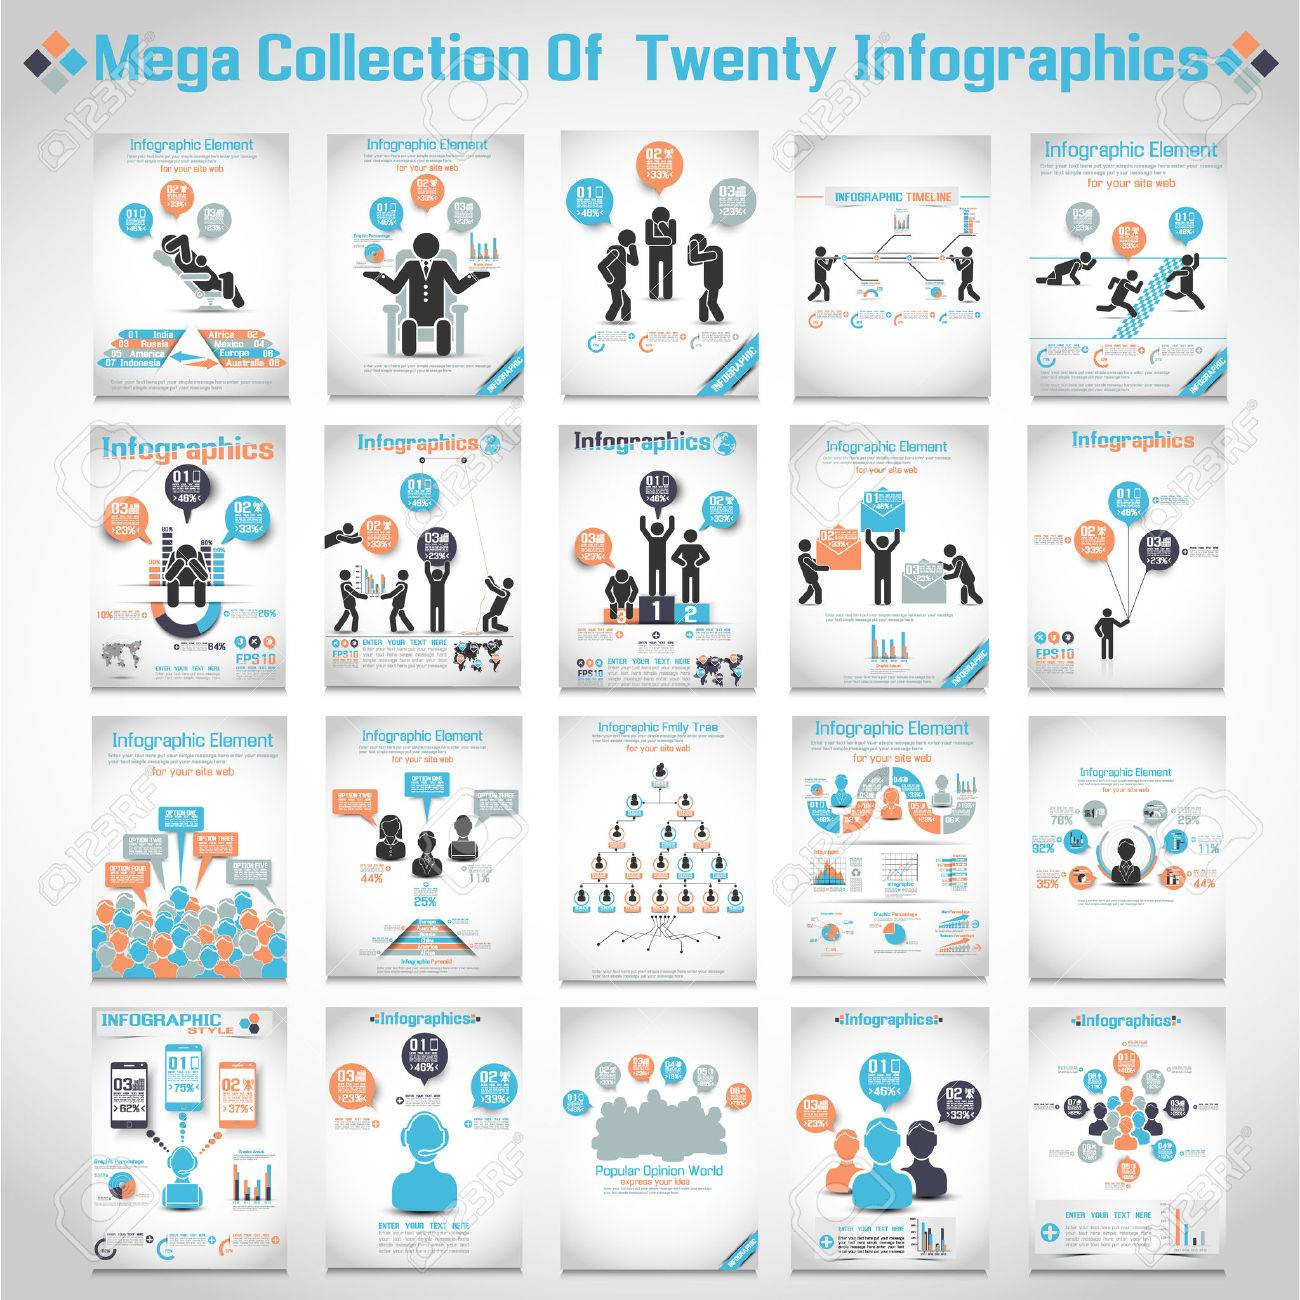 MEGA COLLECTIONS OF TEN MODERN ORIGAMI BUSINESS ICON MAN STYLE OPTIONS BANNER 3 Stock Vector - 24057085